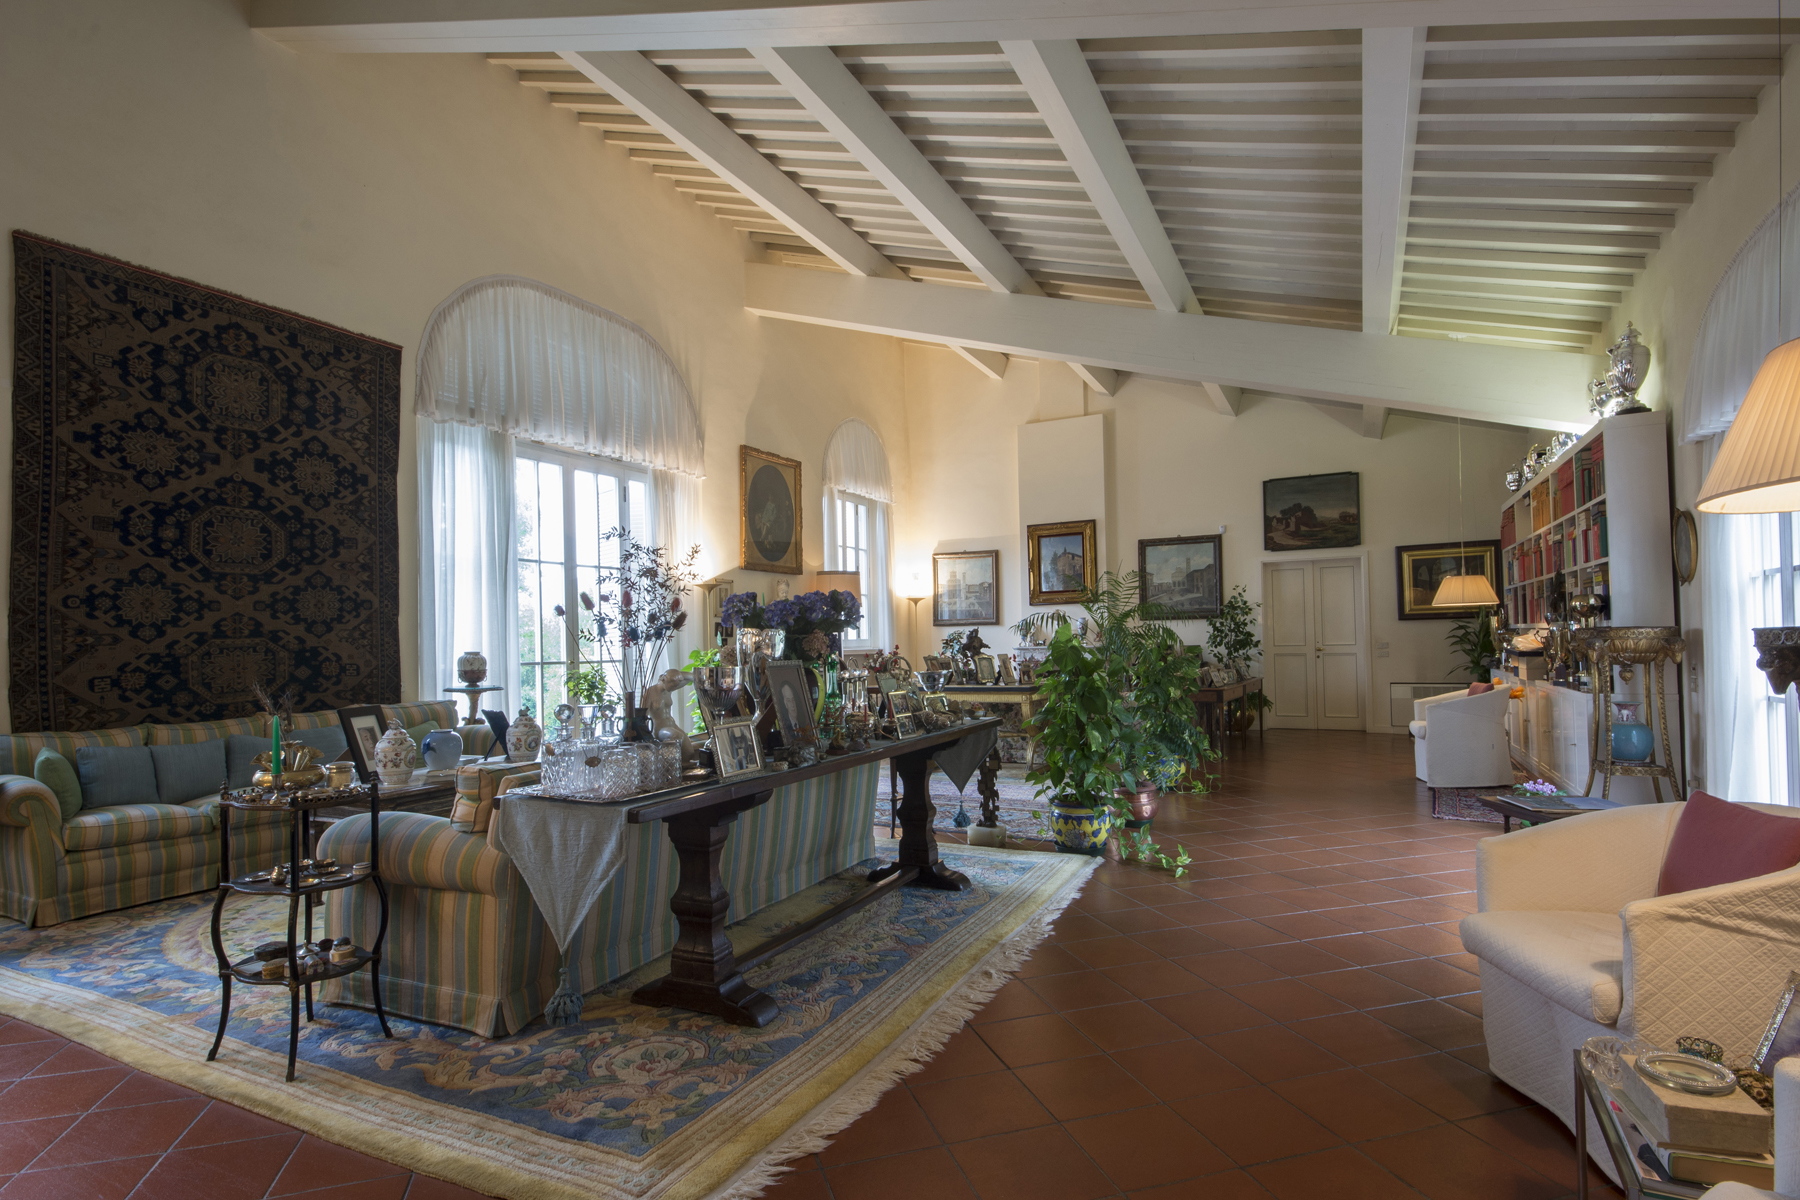 Additional photo for property listing at Magnificent Historical Villa Via Sant'Alessio Lucca, Lucca 55100 Italia